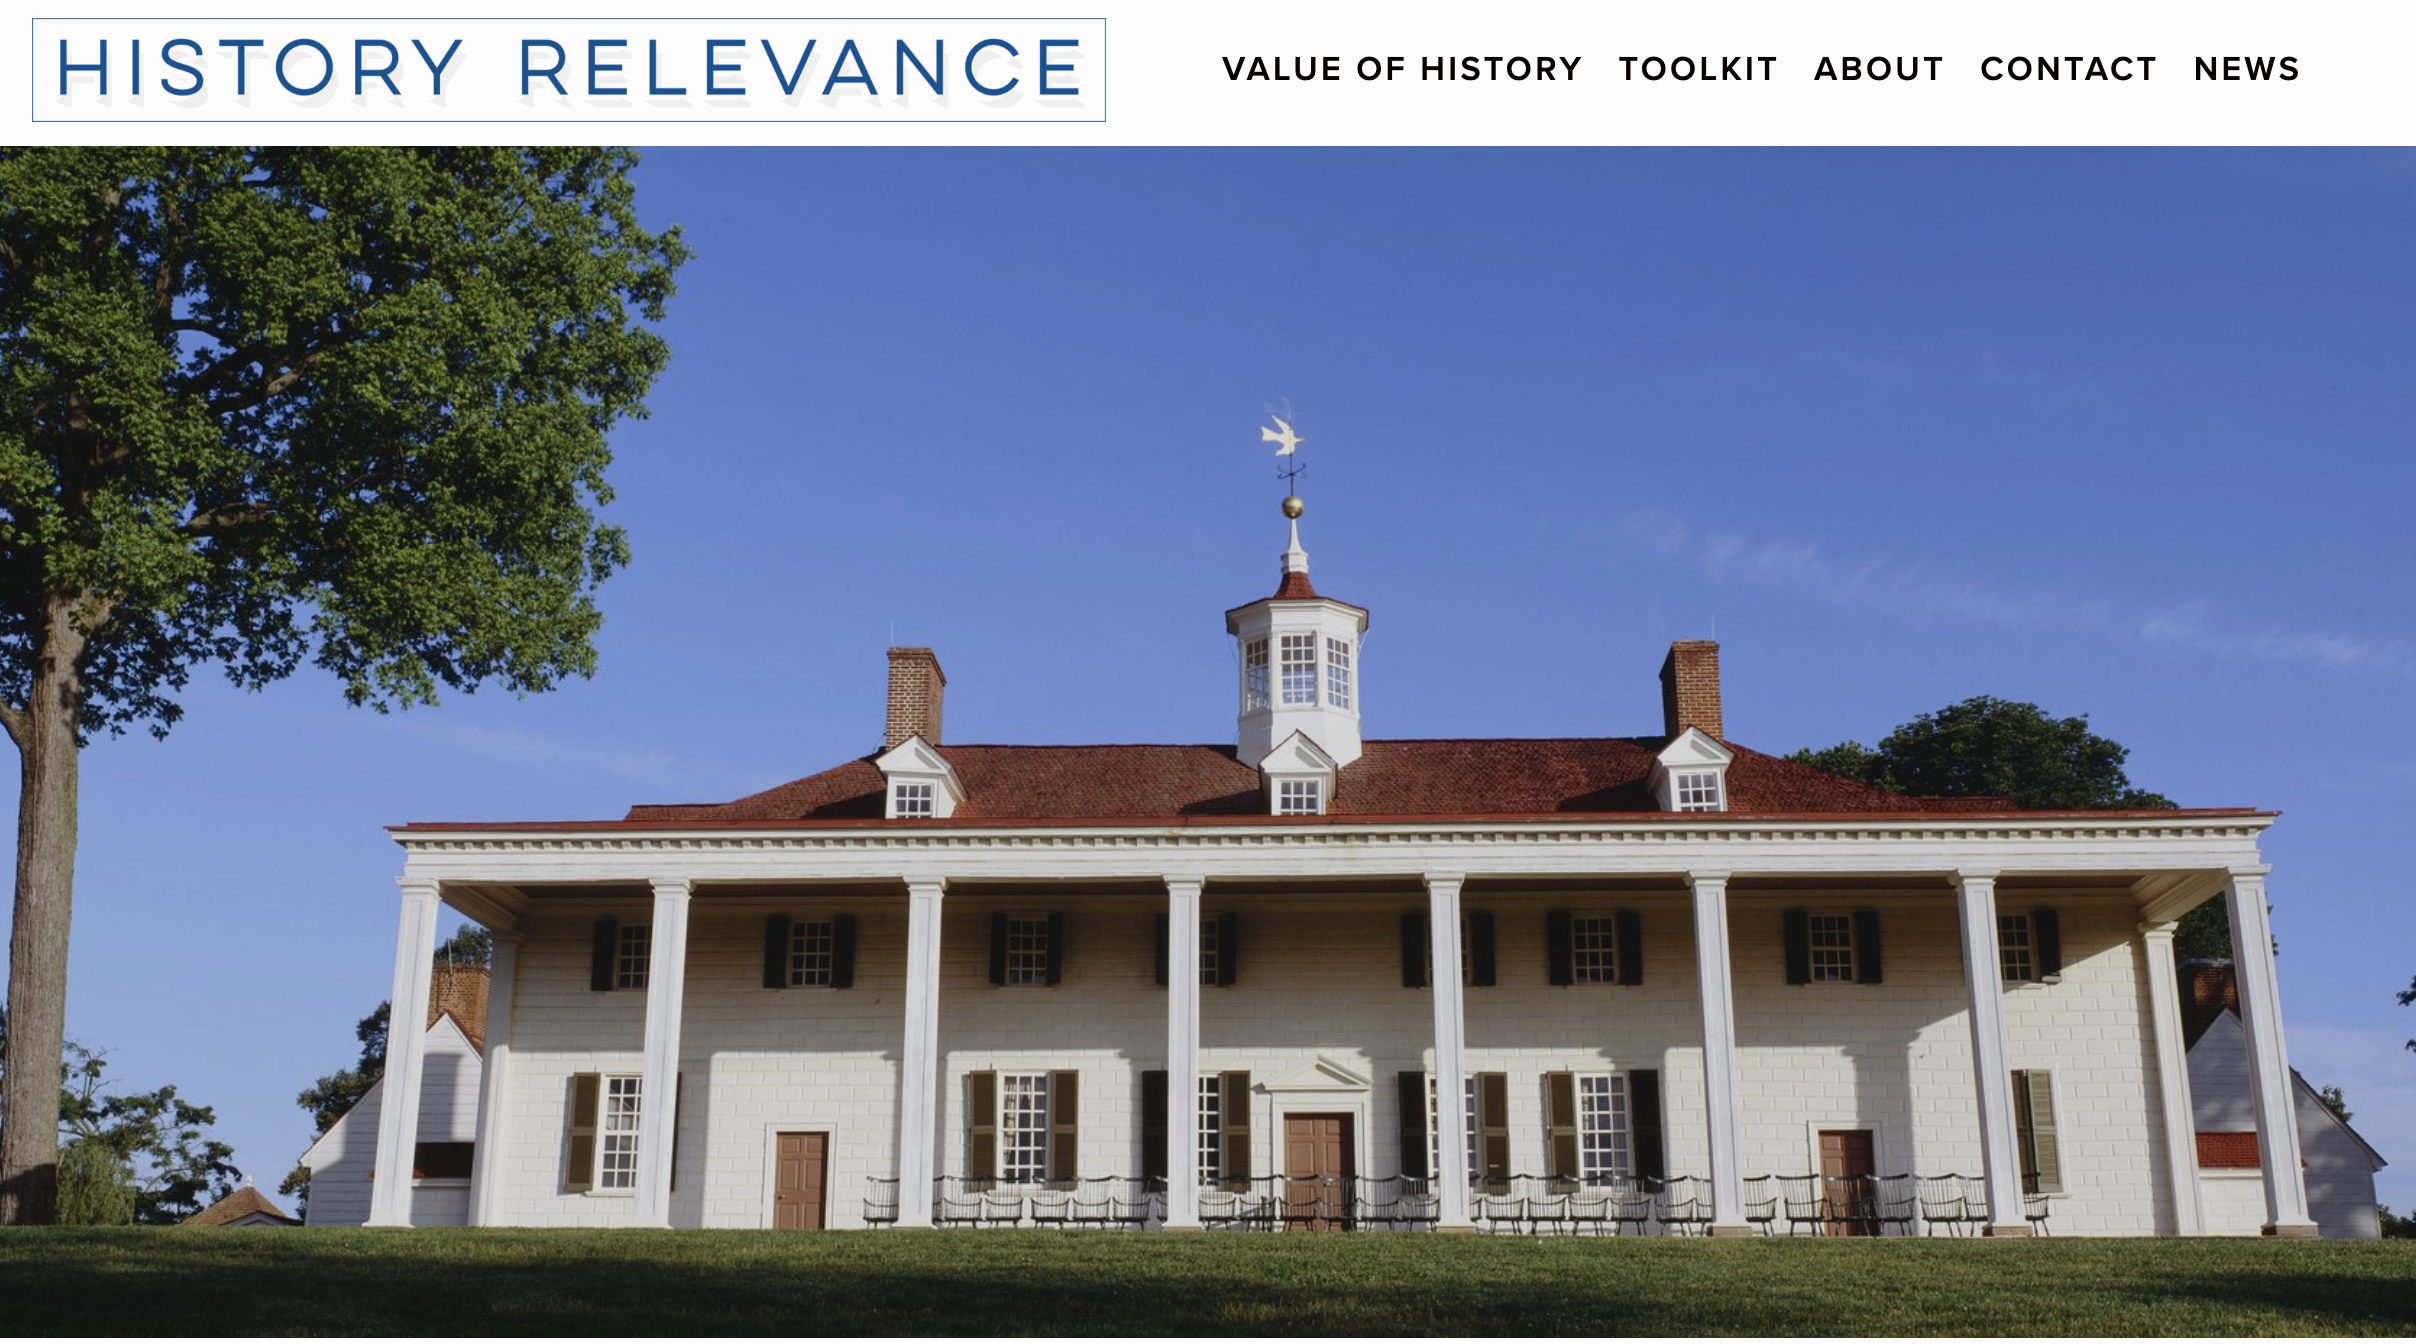 History Relevance Campaign - Website strategy and creationLogo developmentContent creation and management